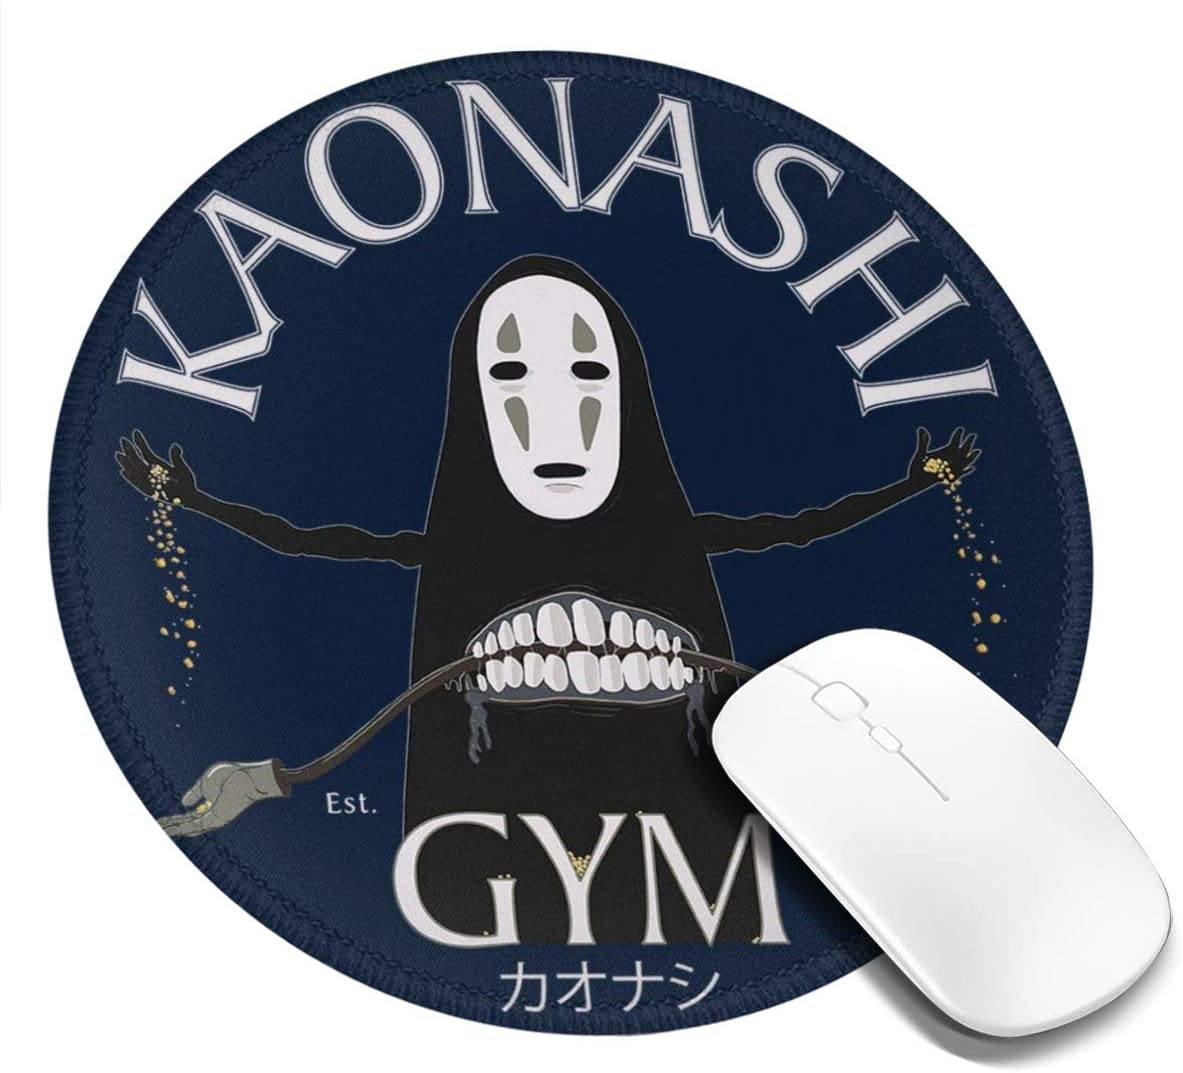 Face Gym Spirited Away Kaonashi Customized Designs Non-Slip Rubber Base Gaming Mouse Pads for Mac,7.9x7.9 in, Pc, Computers. Ideal for Working Or Game